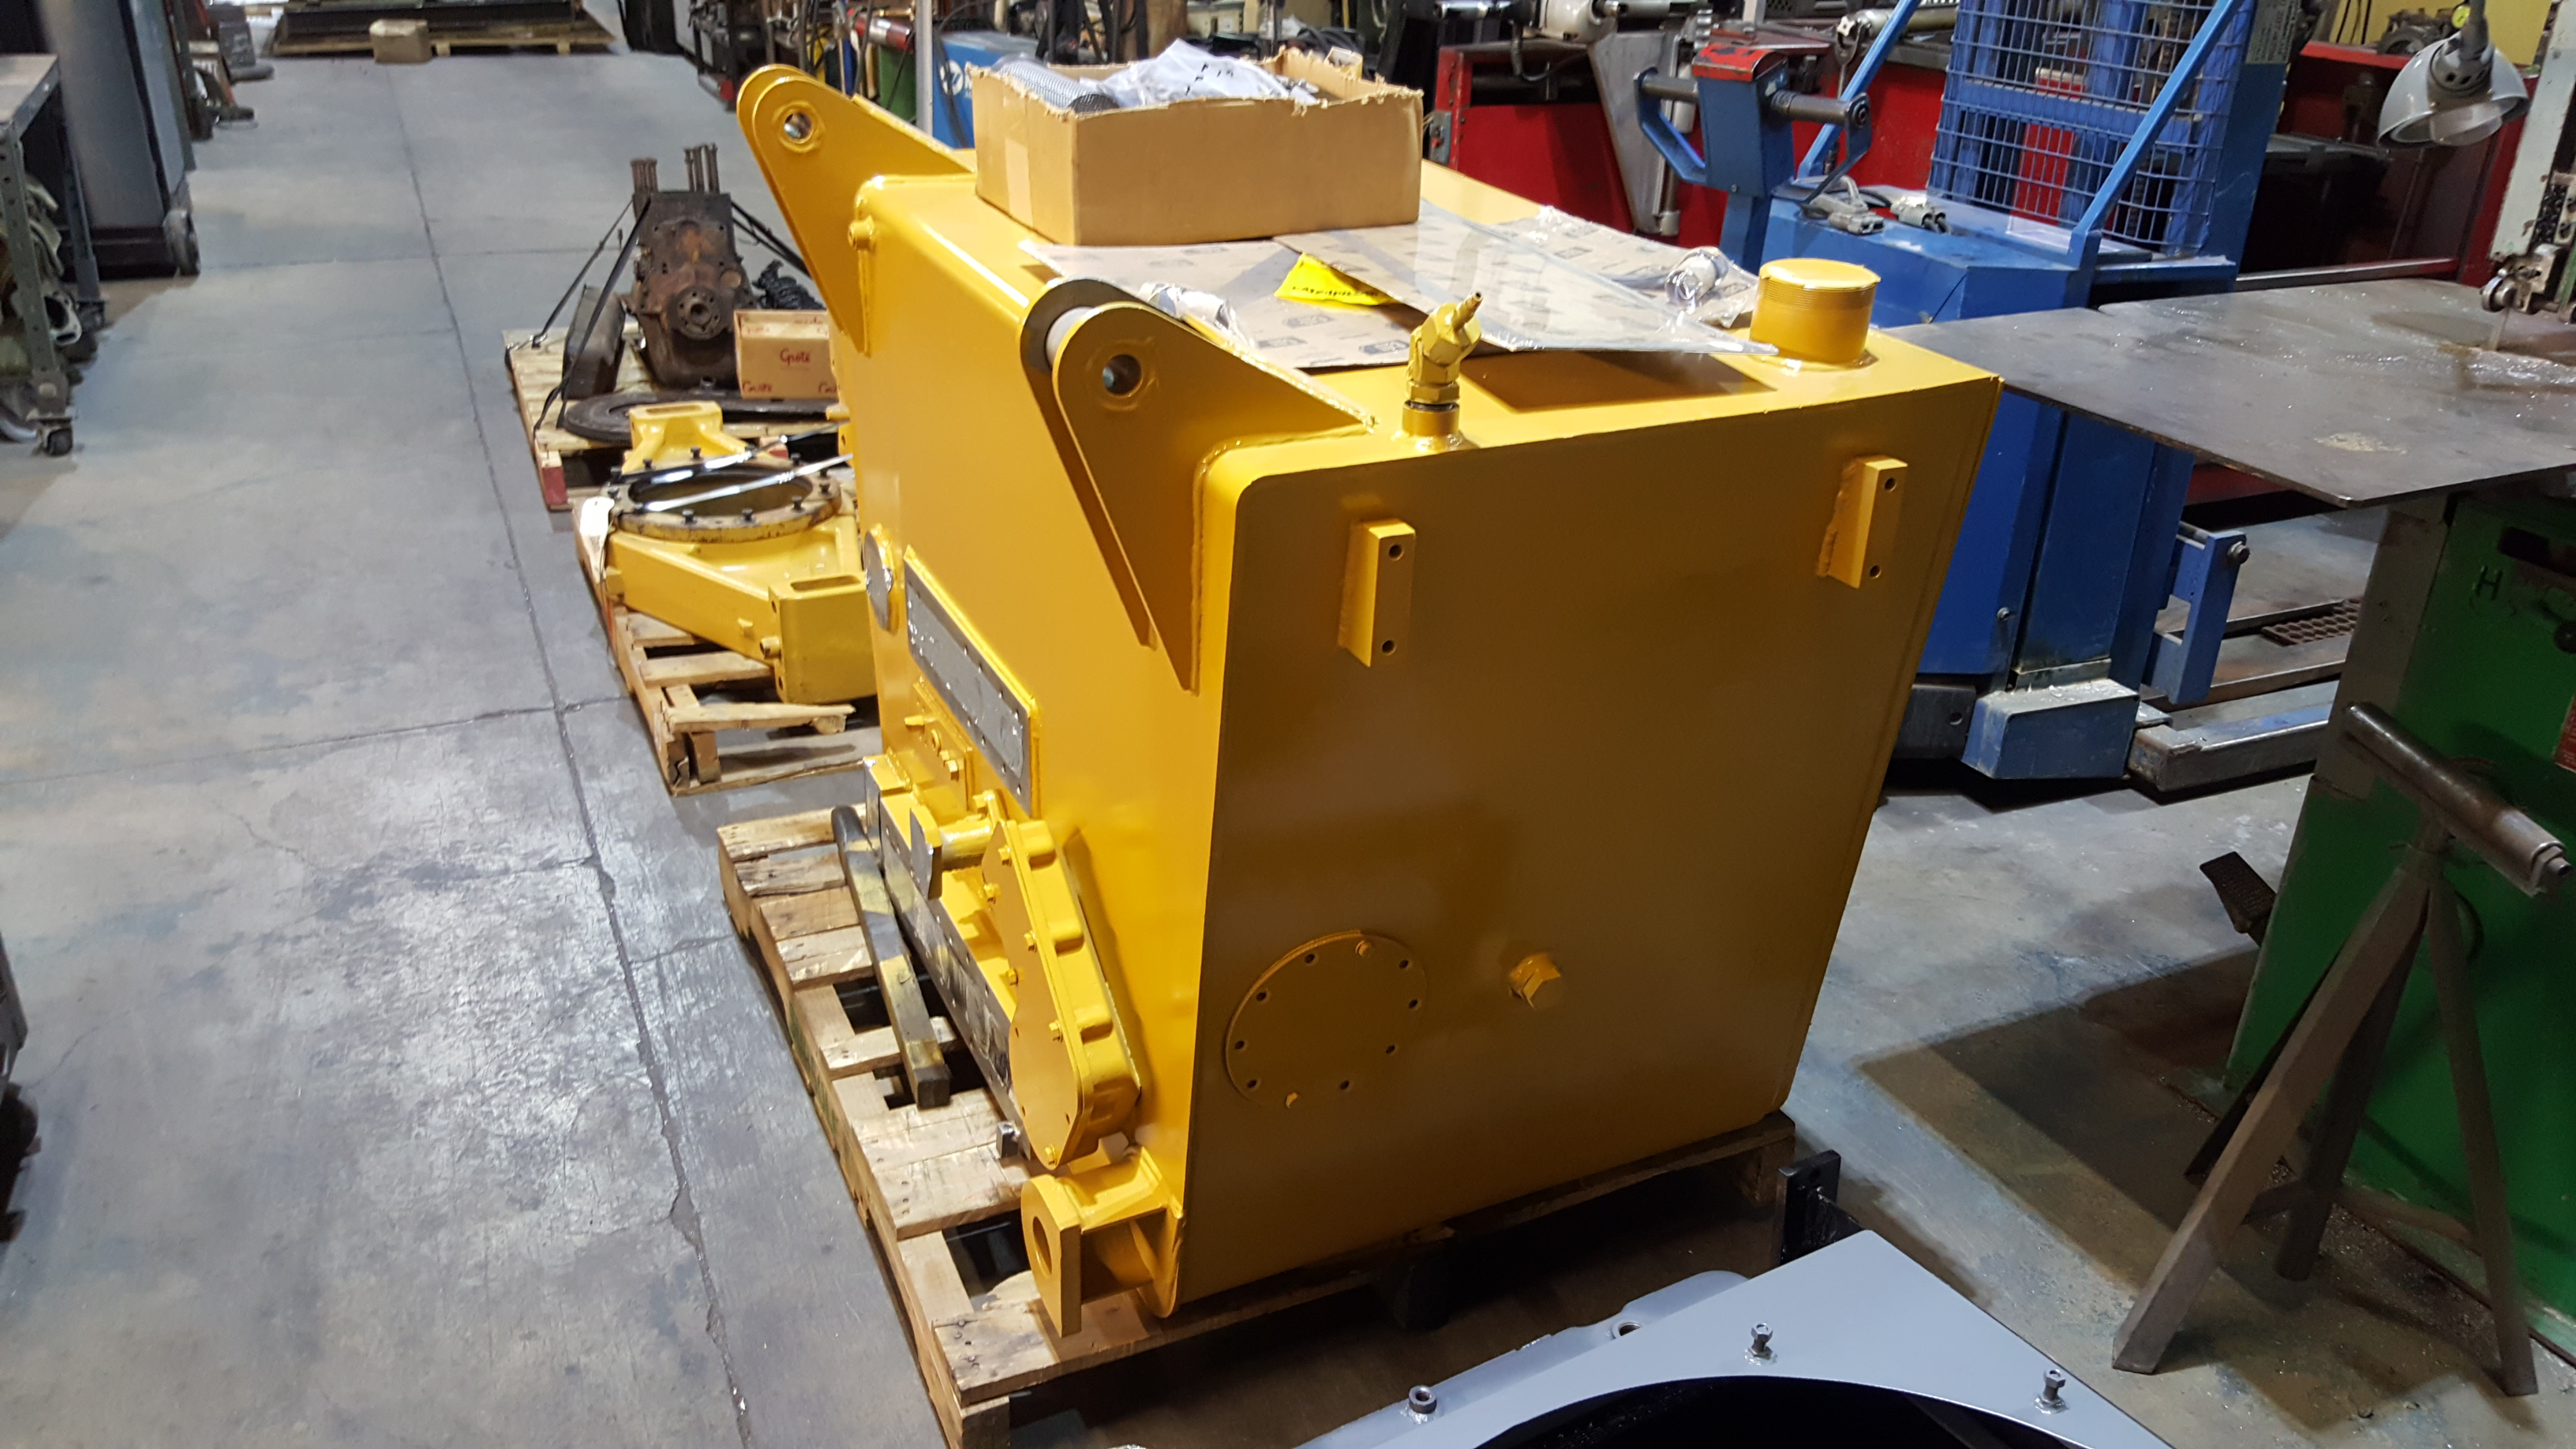 Caterpillar 785 Haul Truck Hydraulic Tank Repair and Reconditioning